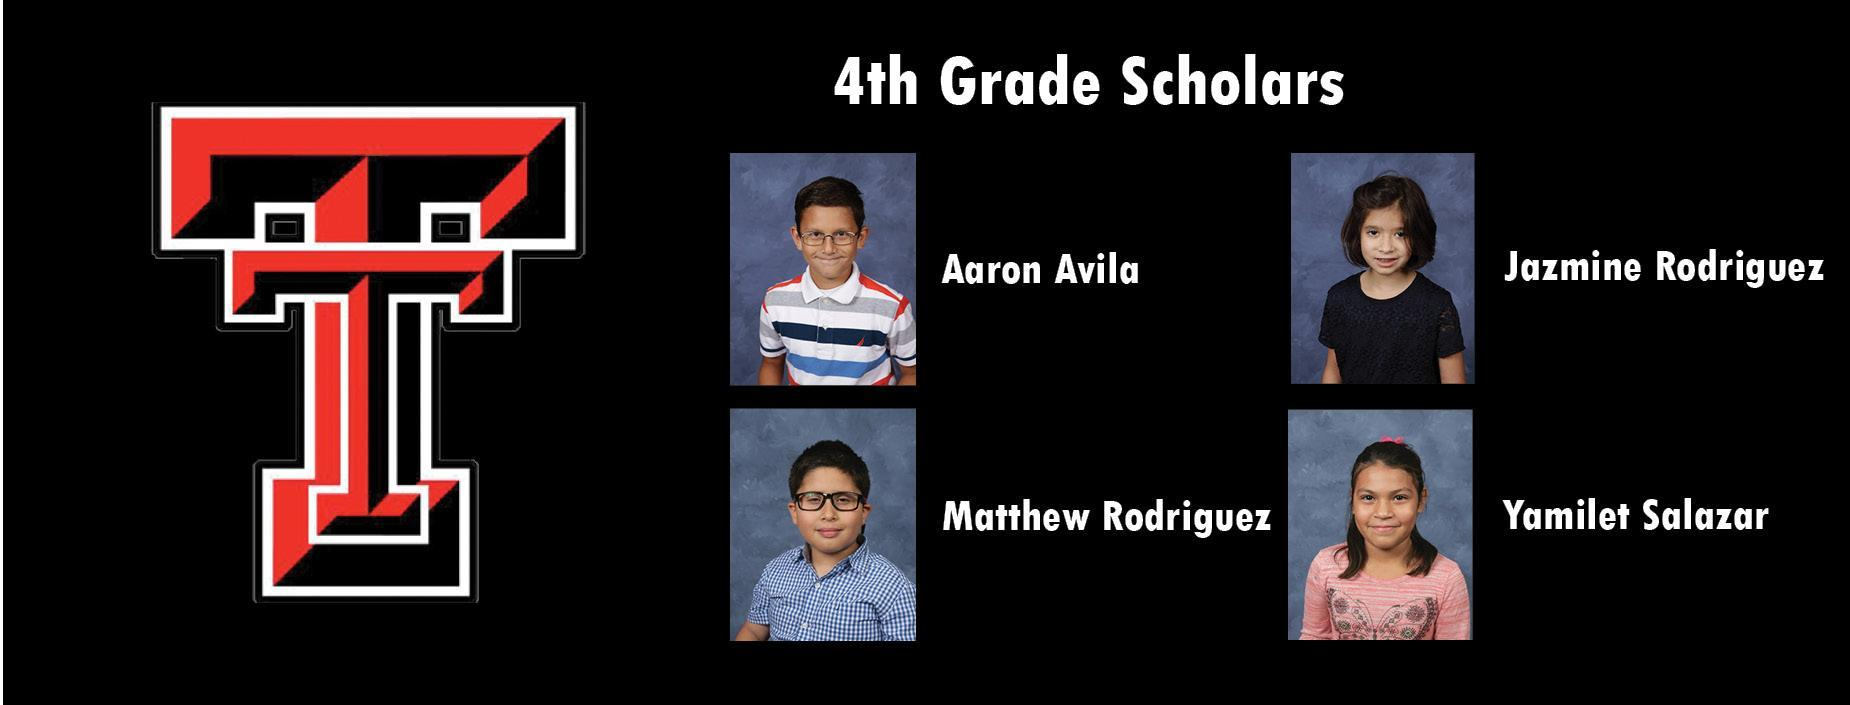 picture of 4th grade scholars